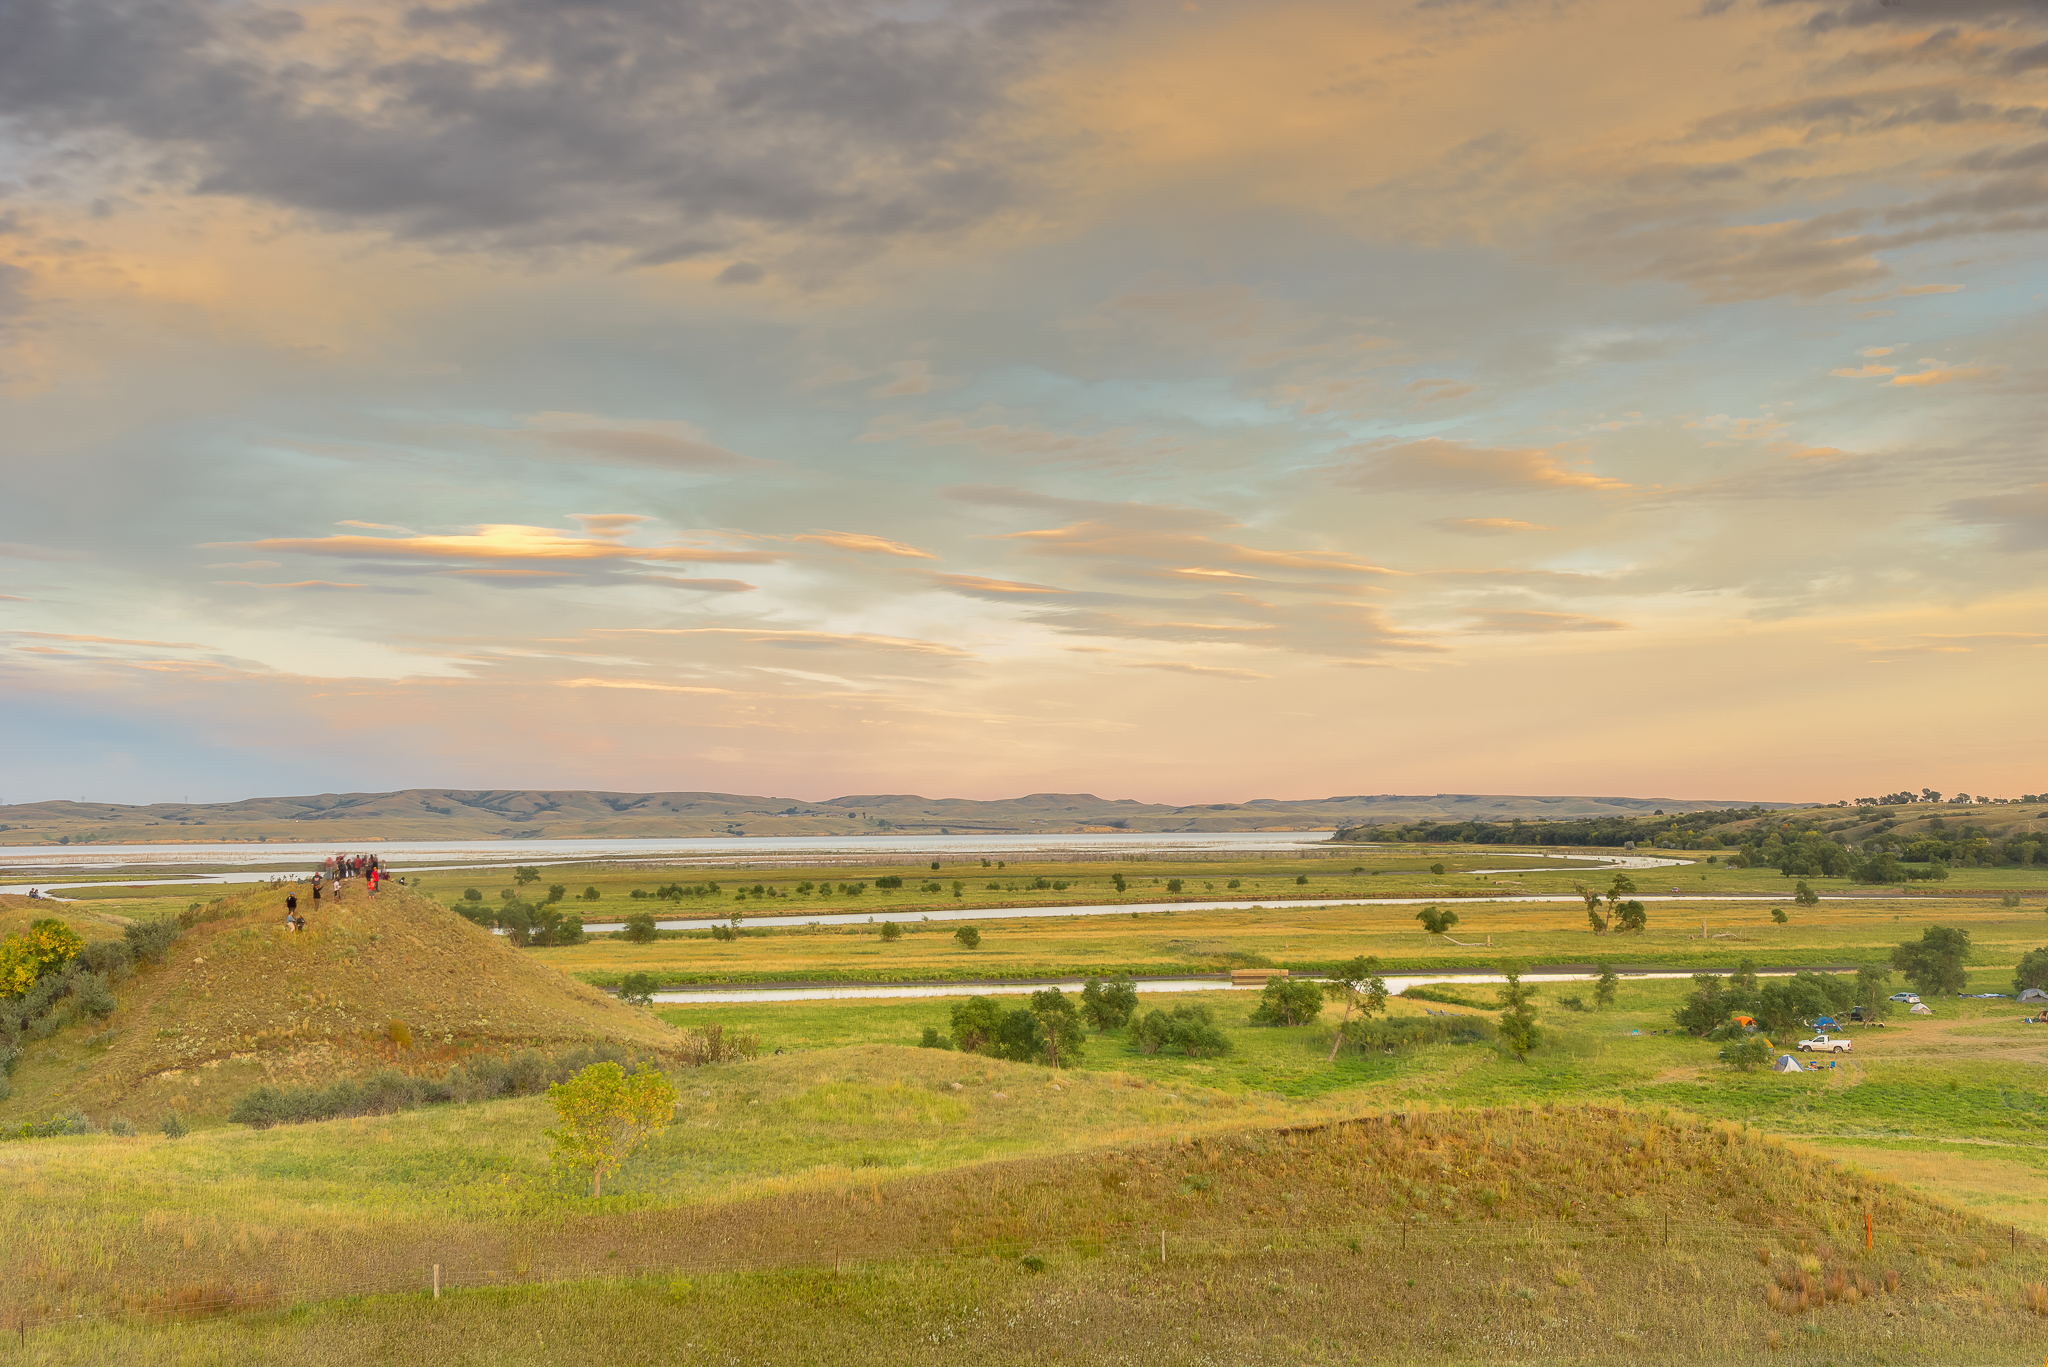 Sunset overlooking Ceremony Hill and the north end of camp.  Cermony Hill was off limits for photographers (non-native at least) so I had to put in some extra work for this perspective.  Standing Rock Reservation Area, ND.